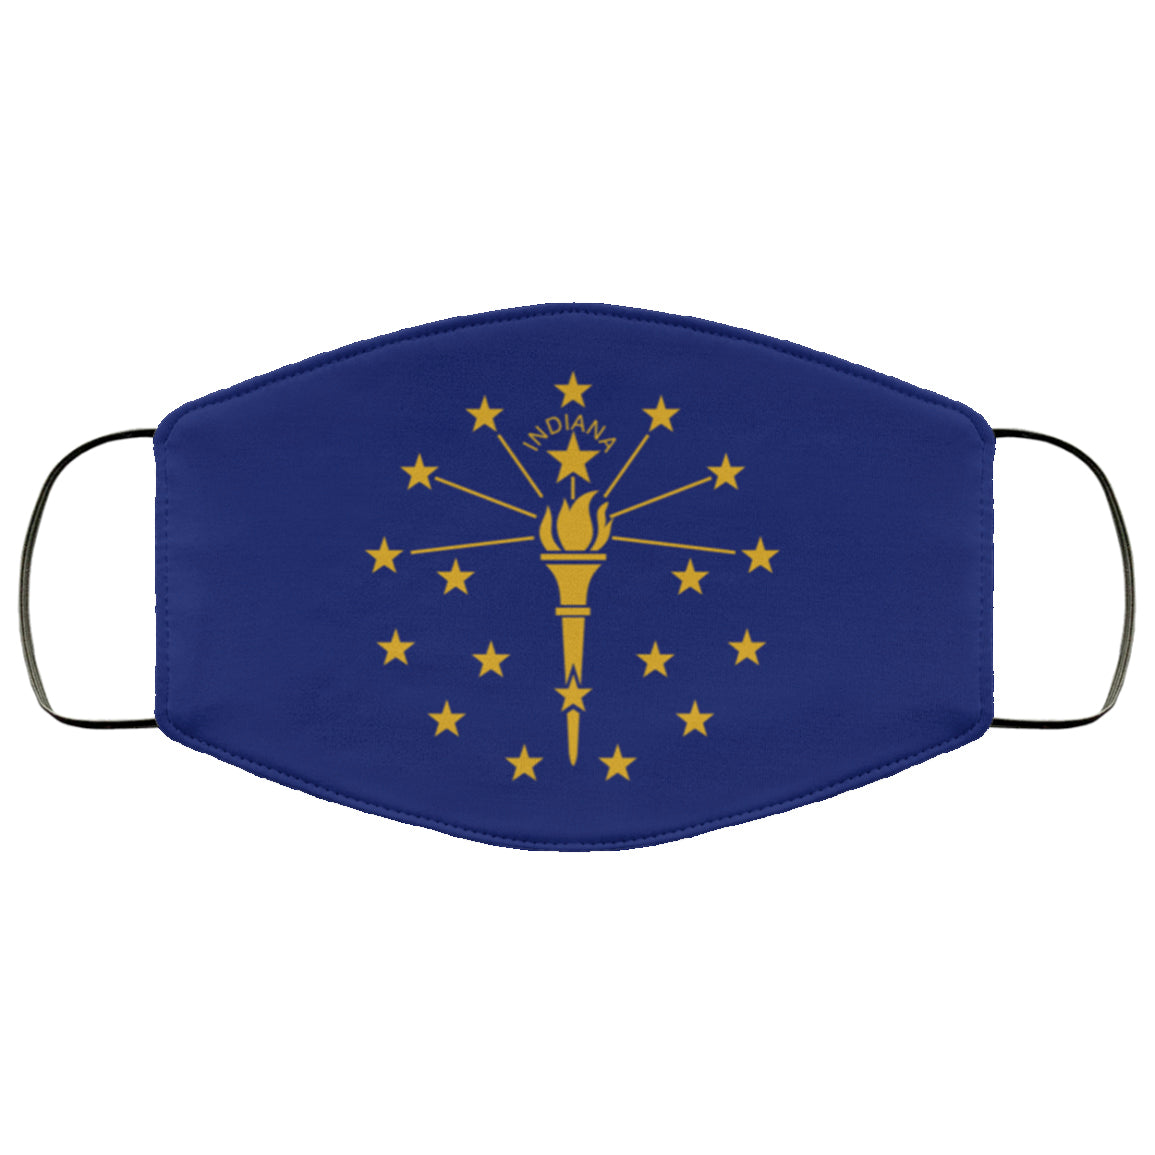 Indiana State Flag USA Face Mask